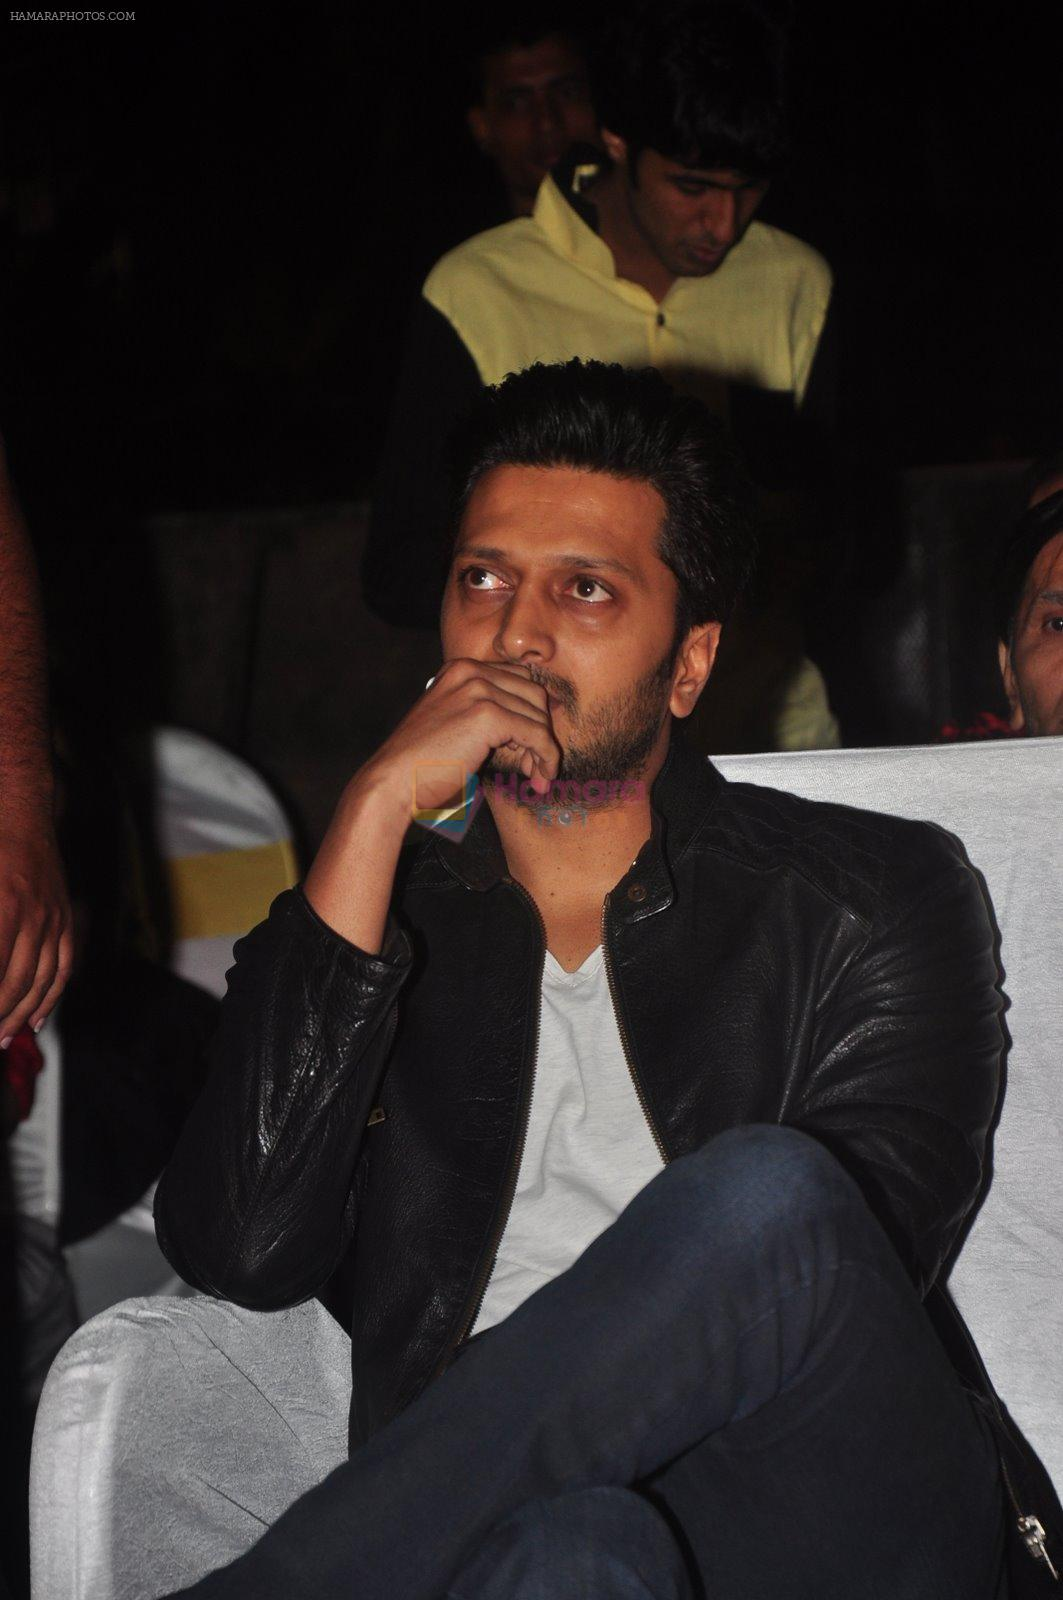 Riteish Deshmukh at Mulund Fest in Mumbai on 28th Dec 2014